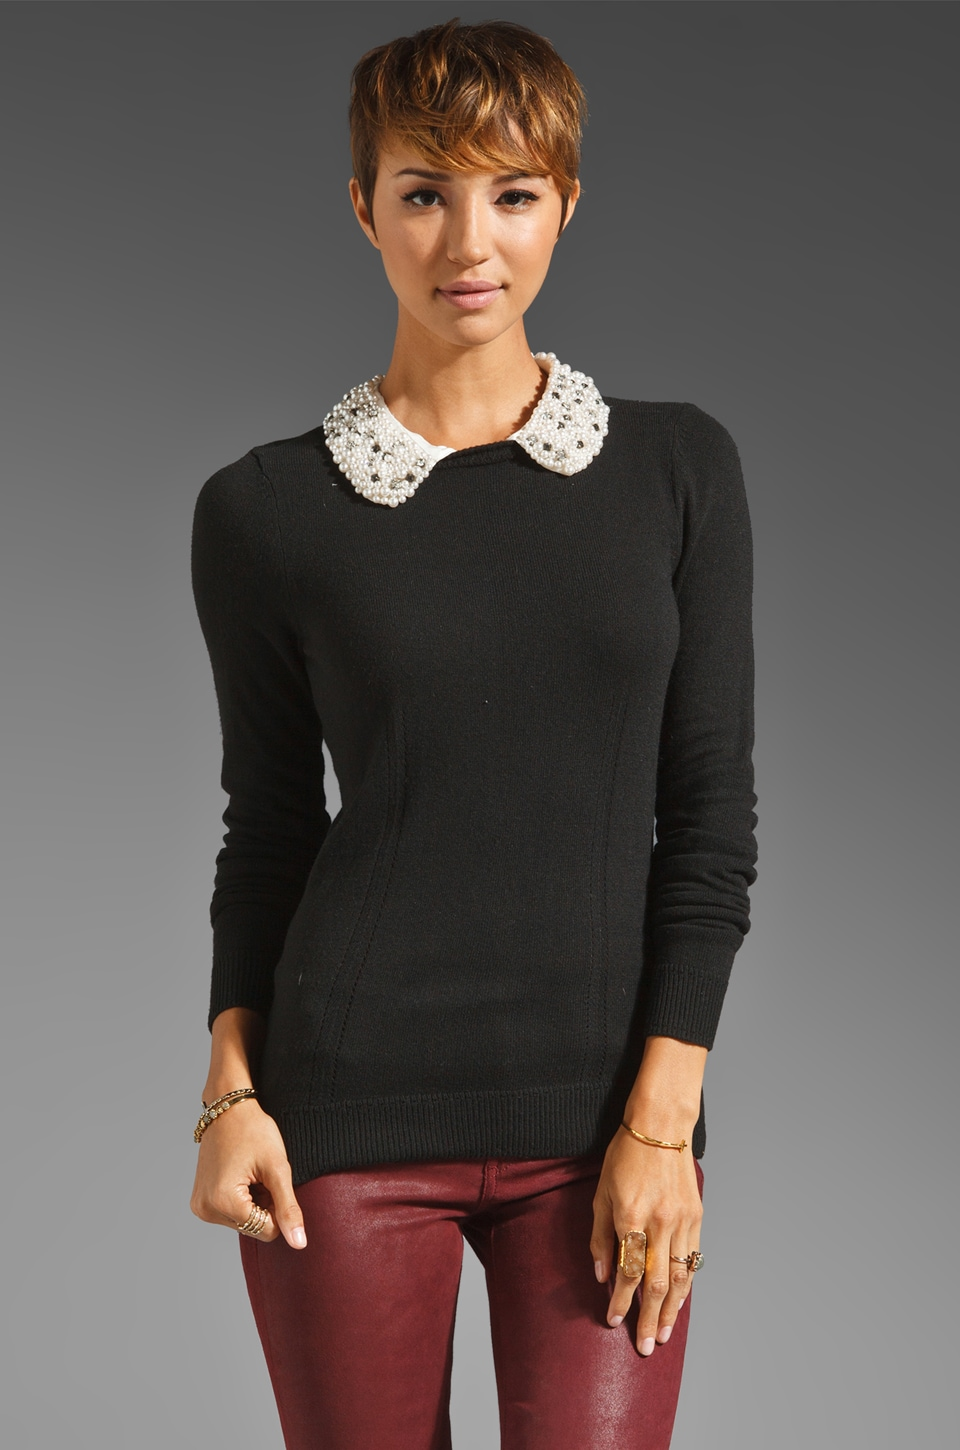 MILLY Jewel Trim Detachable Collar Sweater in Black